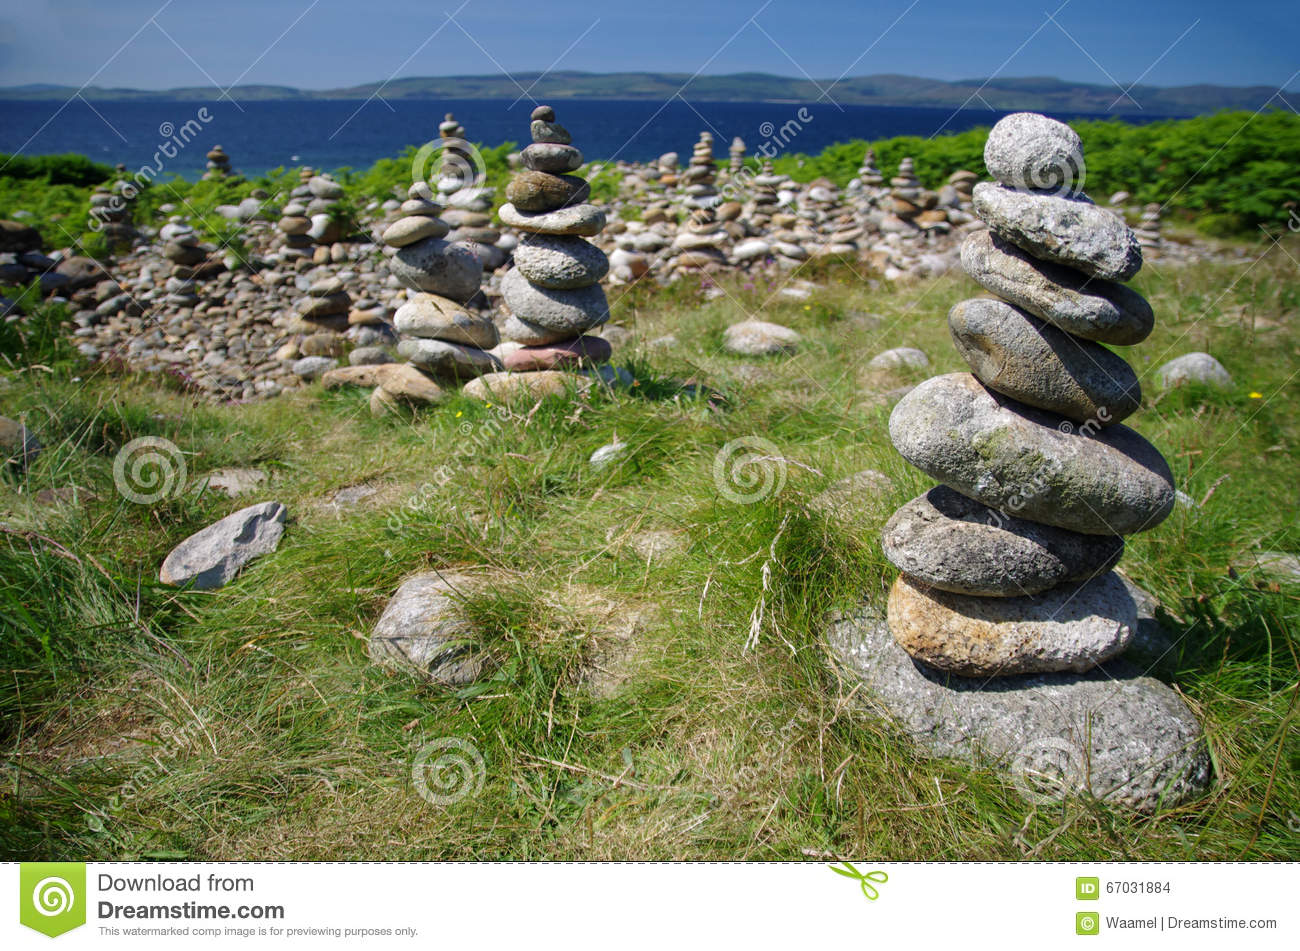 Pile Of Rocks On The Isle Of Arran (Scotland) Stock Photo.